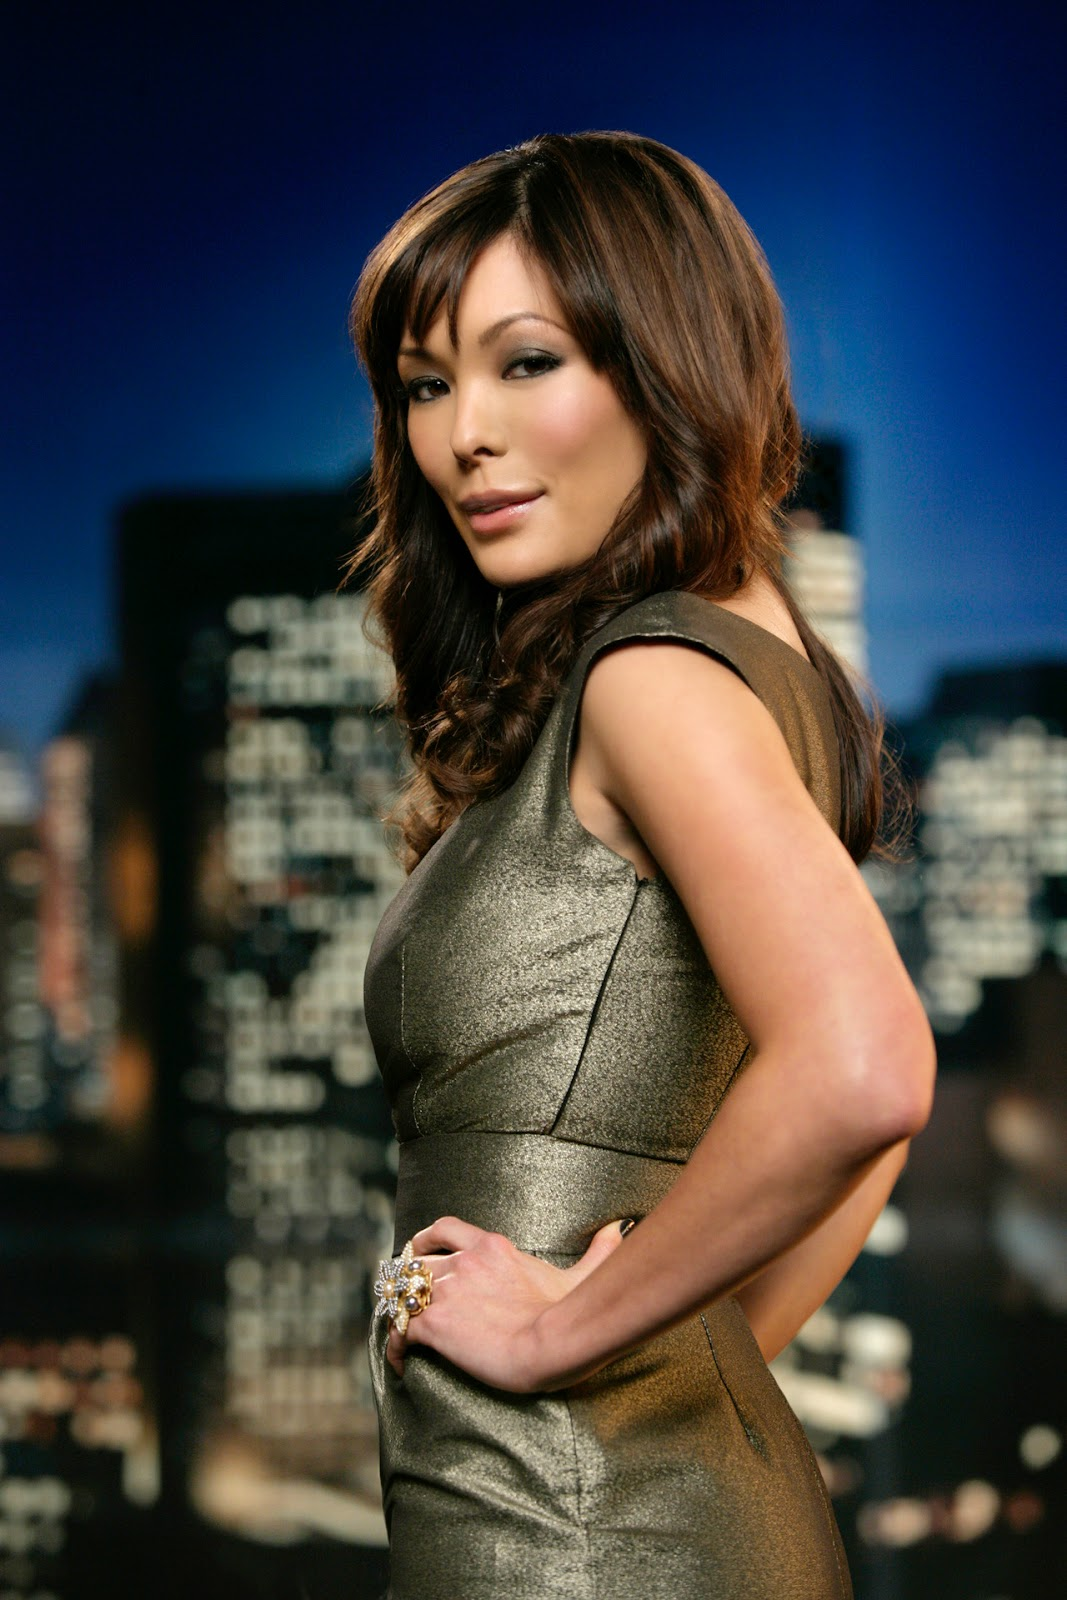 Lindsay Price naked (91 fotos) Video, Snapchat, swimsuit